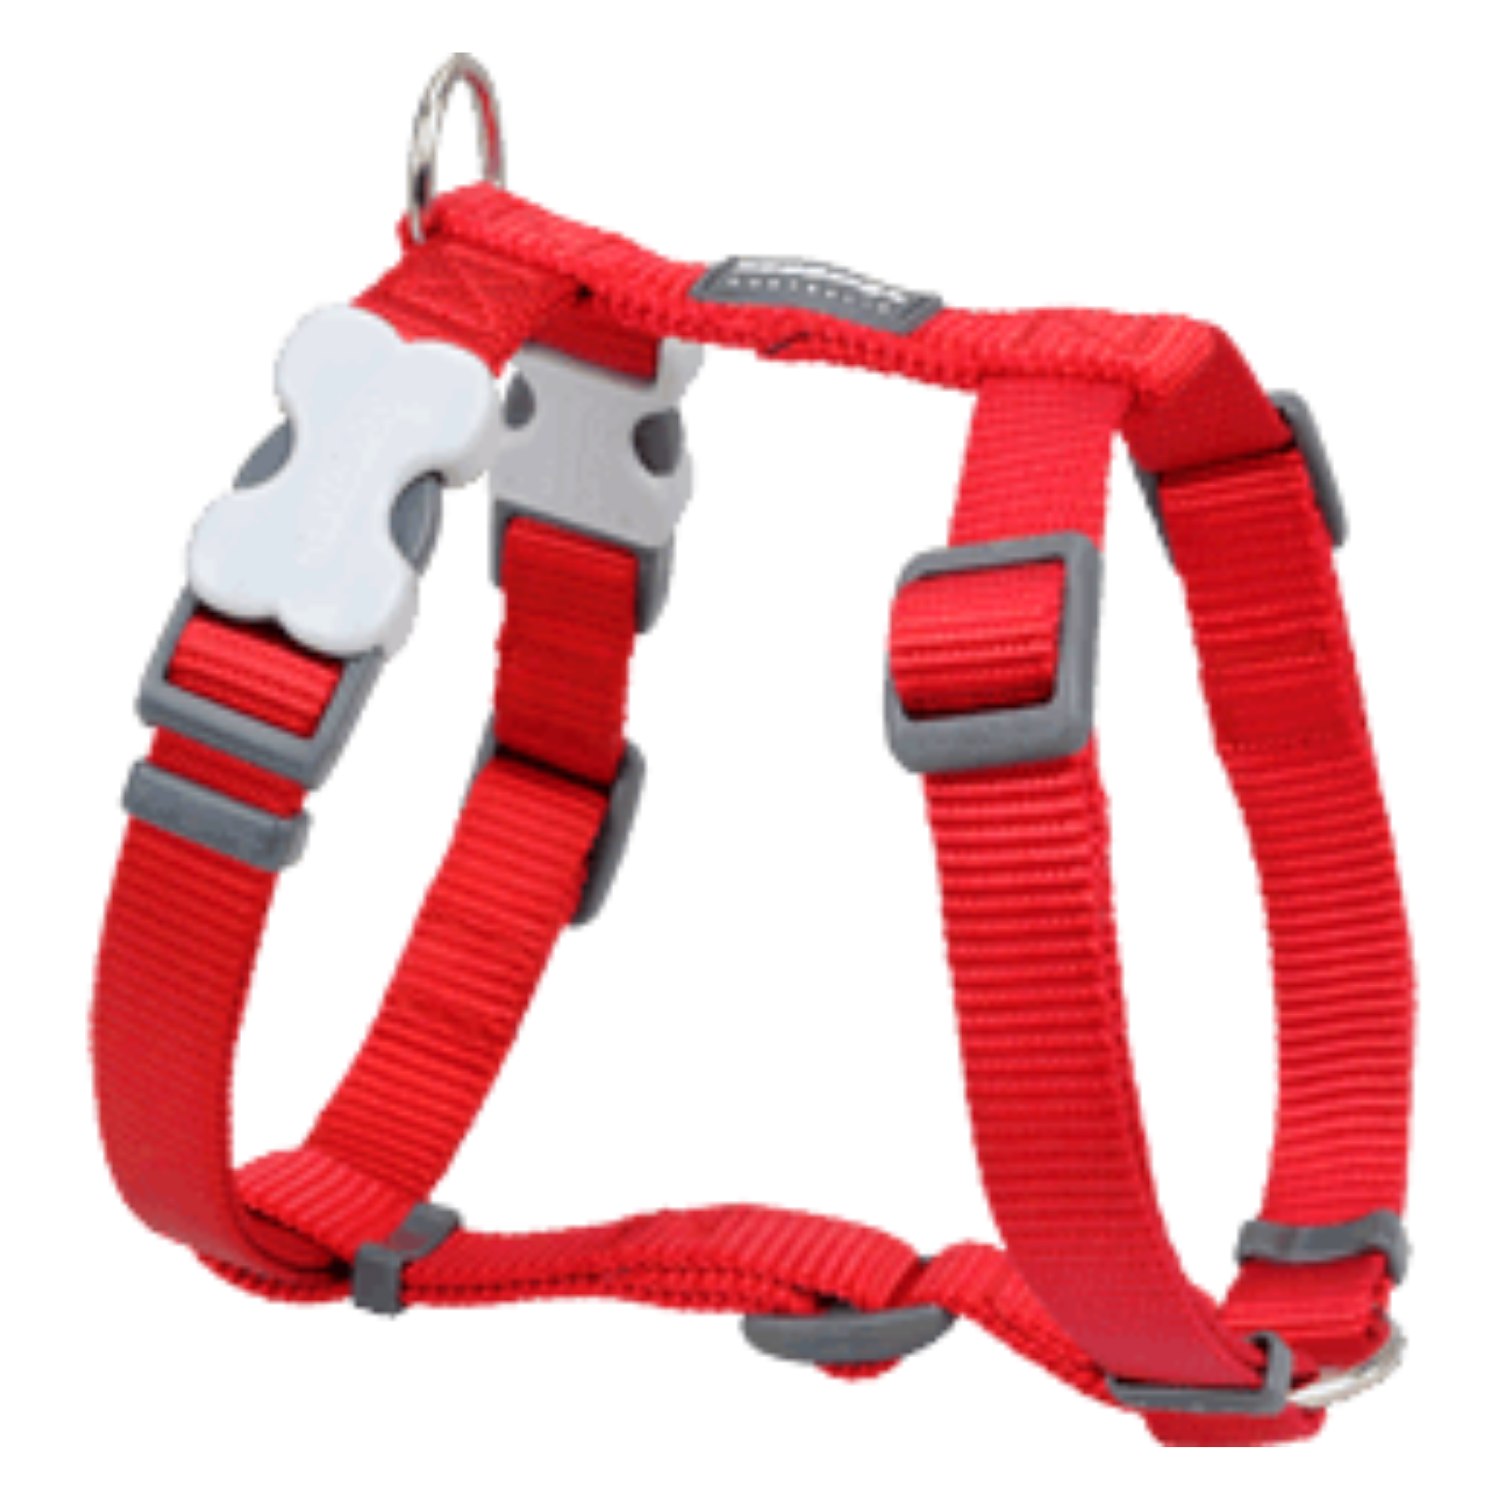 Red Dingo Dog Harness - Classic Range (Red)